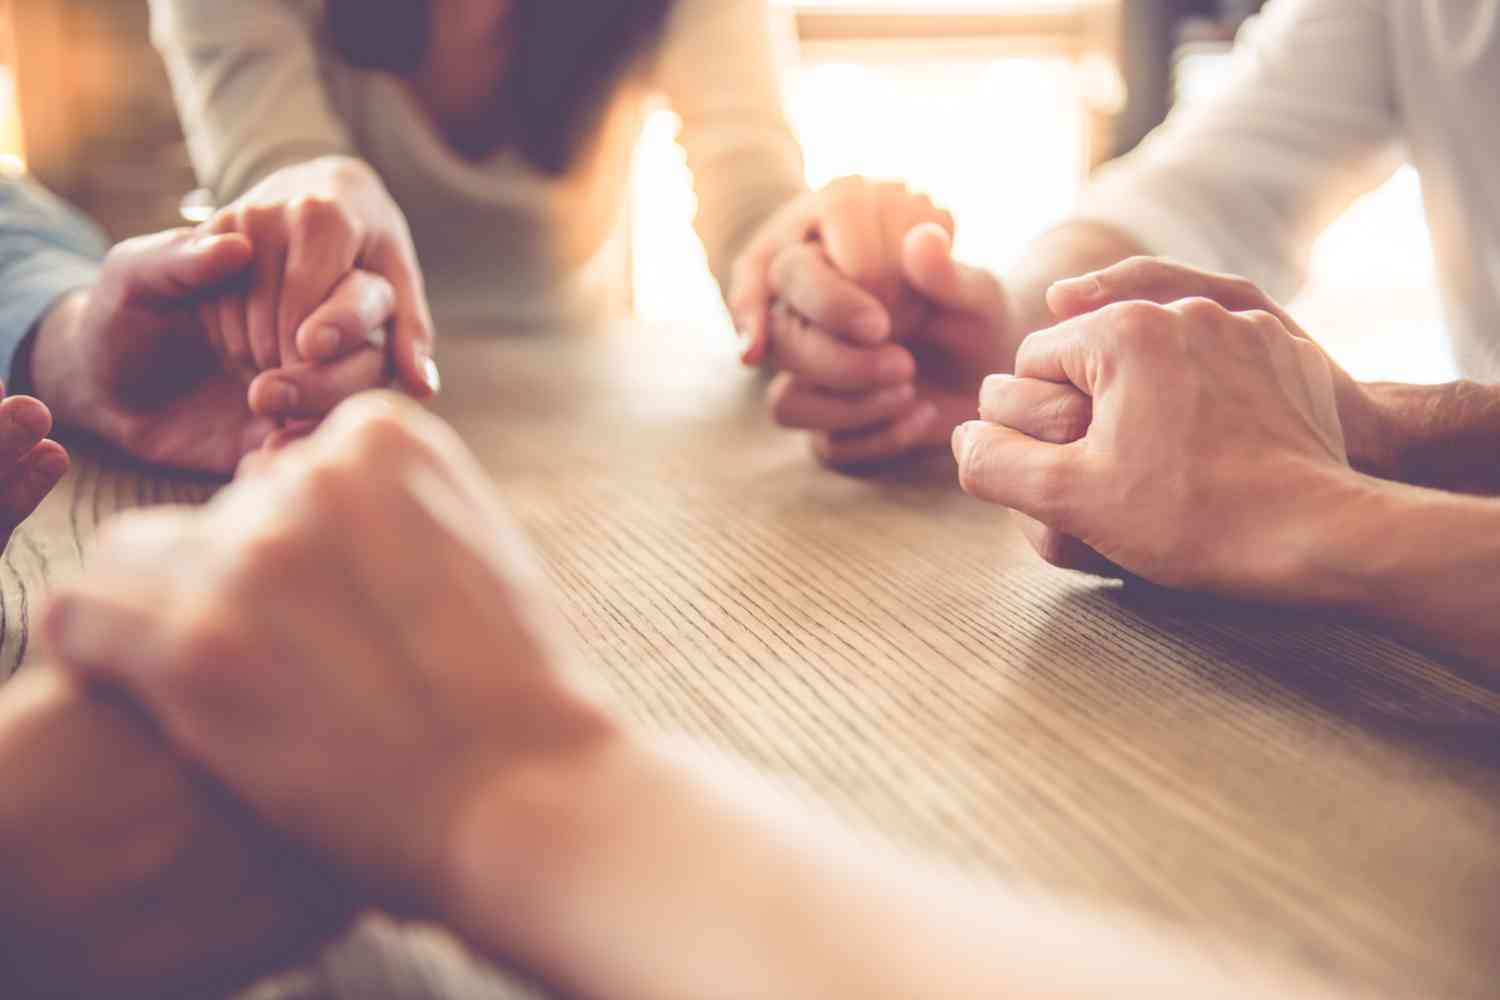 """More than half of Americans have prayed for end to COVID-19, including many who """"seldom or never pray"""": Pew"""